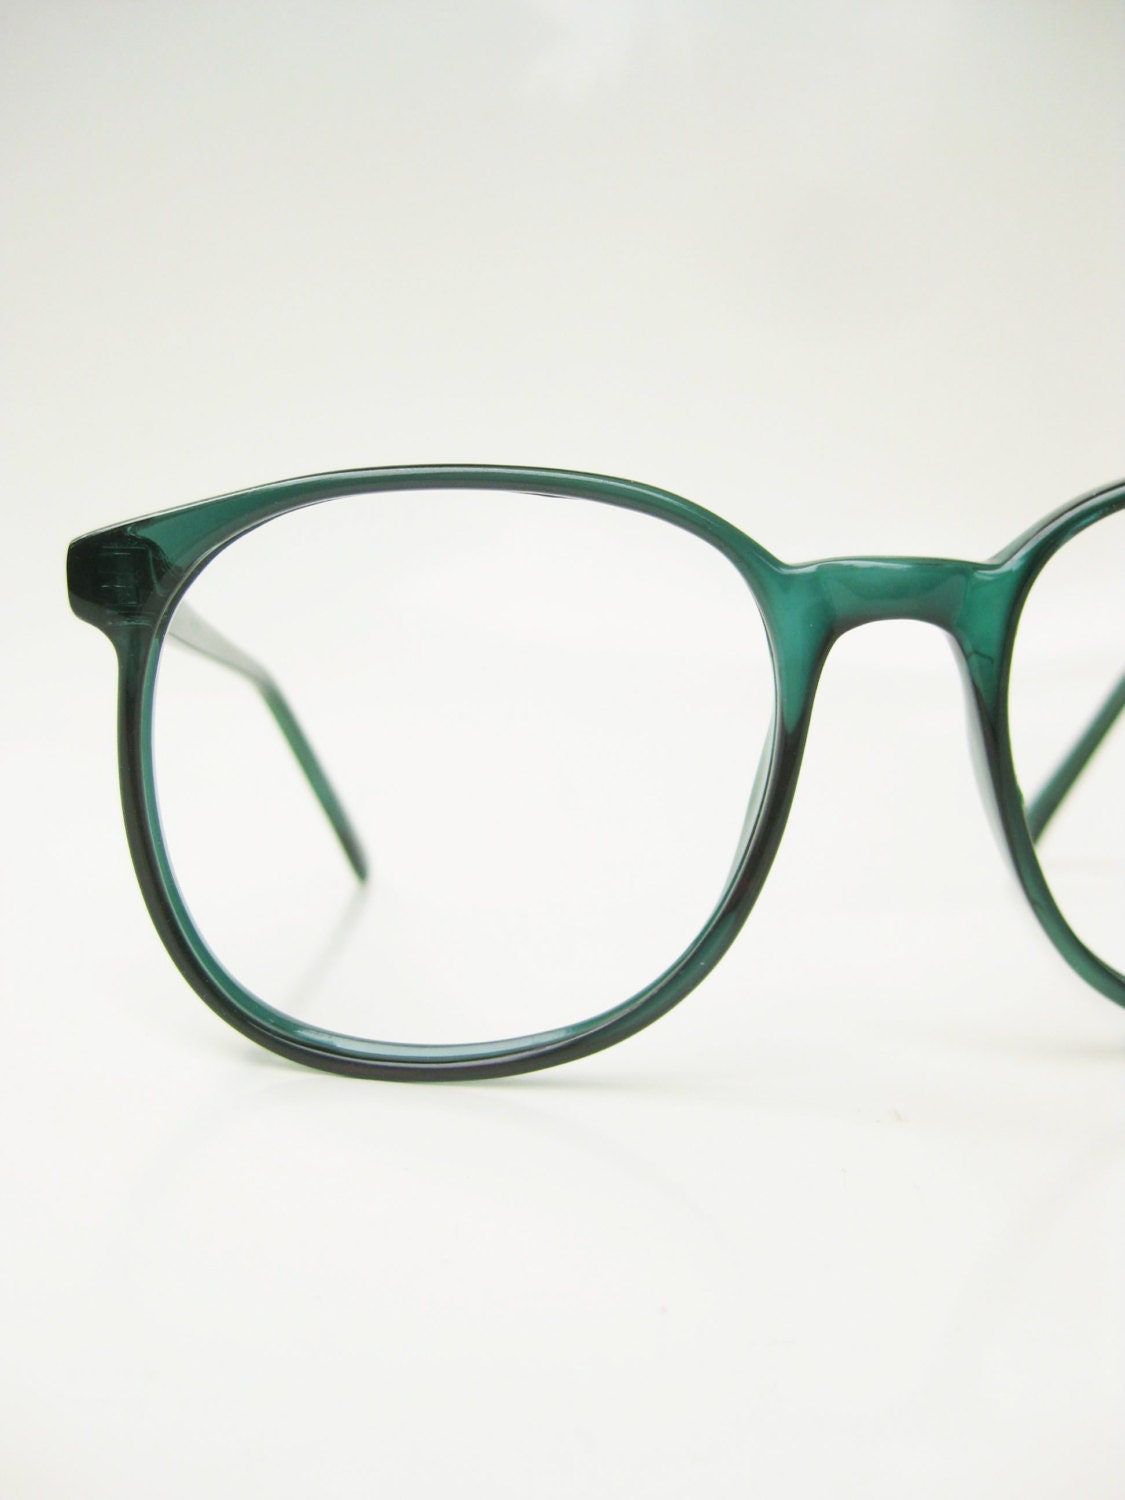 Vintage Green Eyeglasses 1970s Oversized Round Glasses Forest